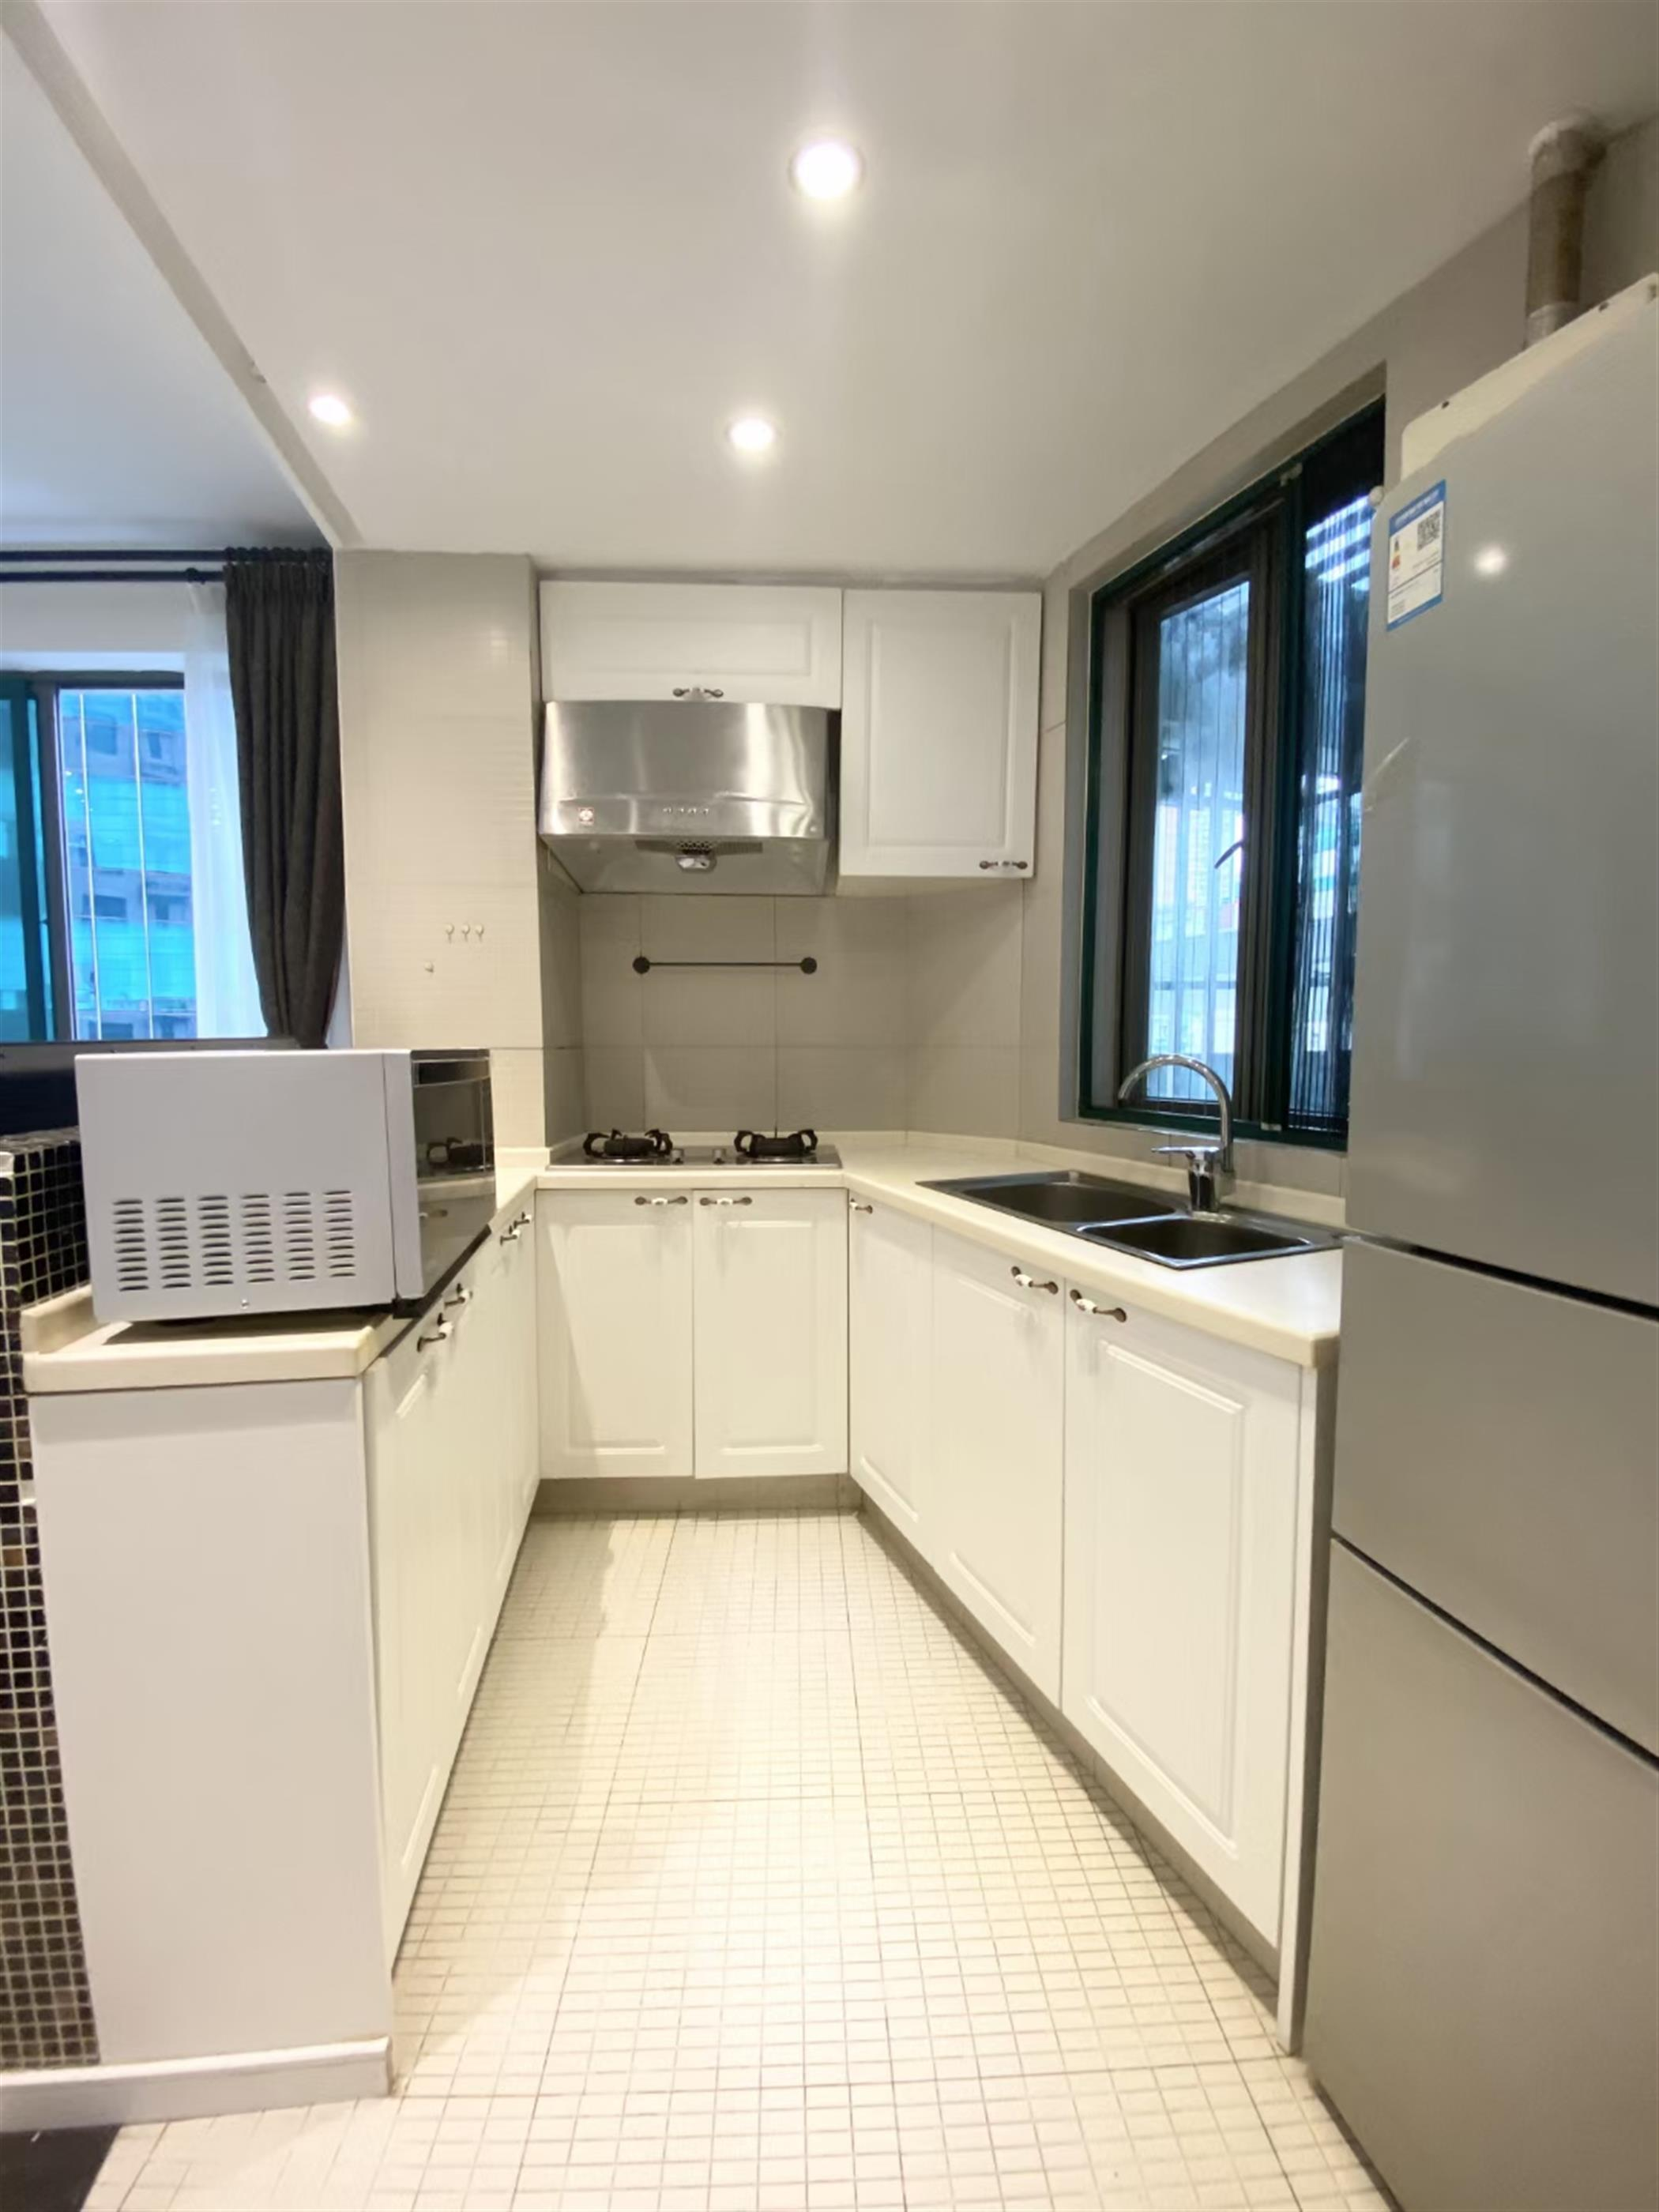 New Kitchen Appliances Spacious Newly Renovated 2BR Top of City Apt Nr Ln 2/12/13 for Rent in Shanghai